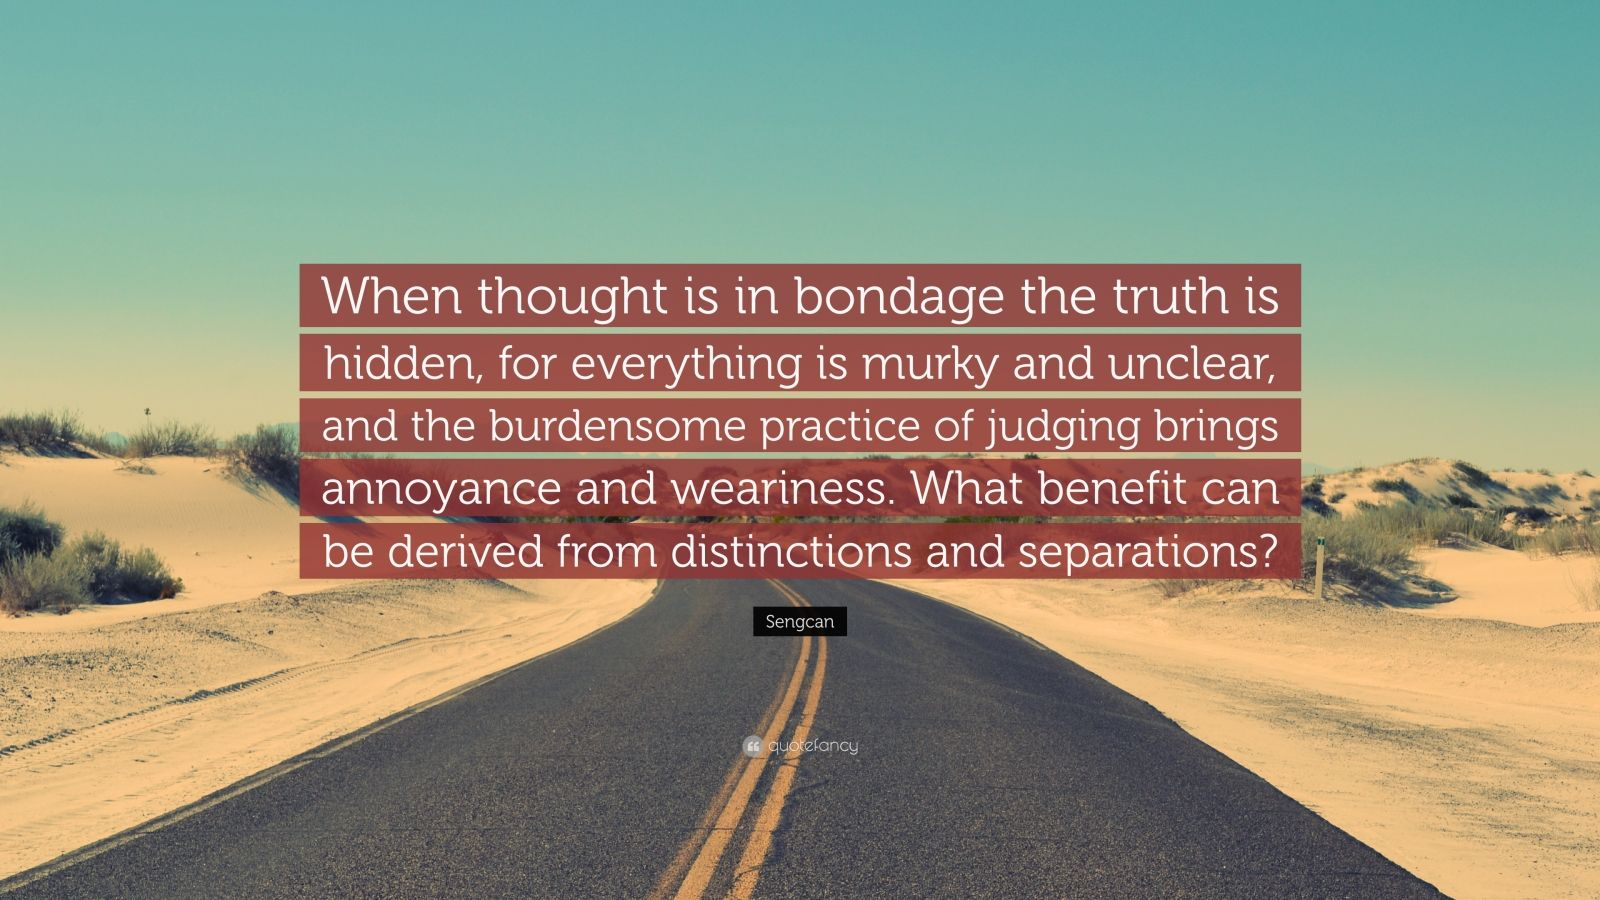 """Sengcan Quote: """"When thought is in bondage the truth is hidden, for everything is murky and unclear, and the burdensome practice of judging brings annoyance and weariness. What benefit can be derived from distinctions and separations?"""""""